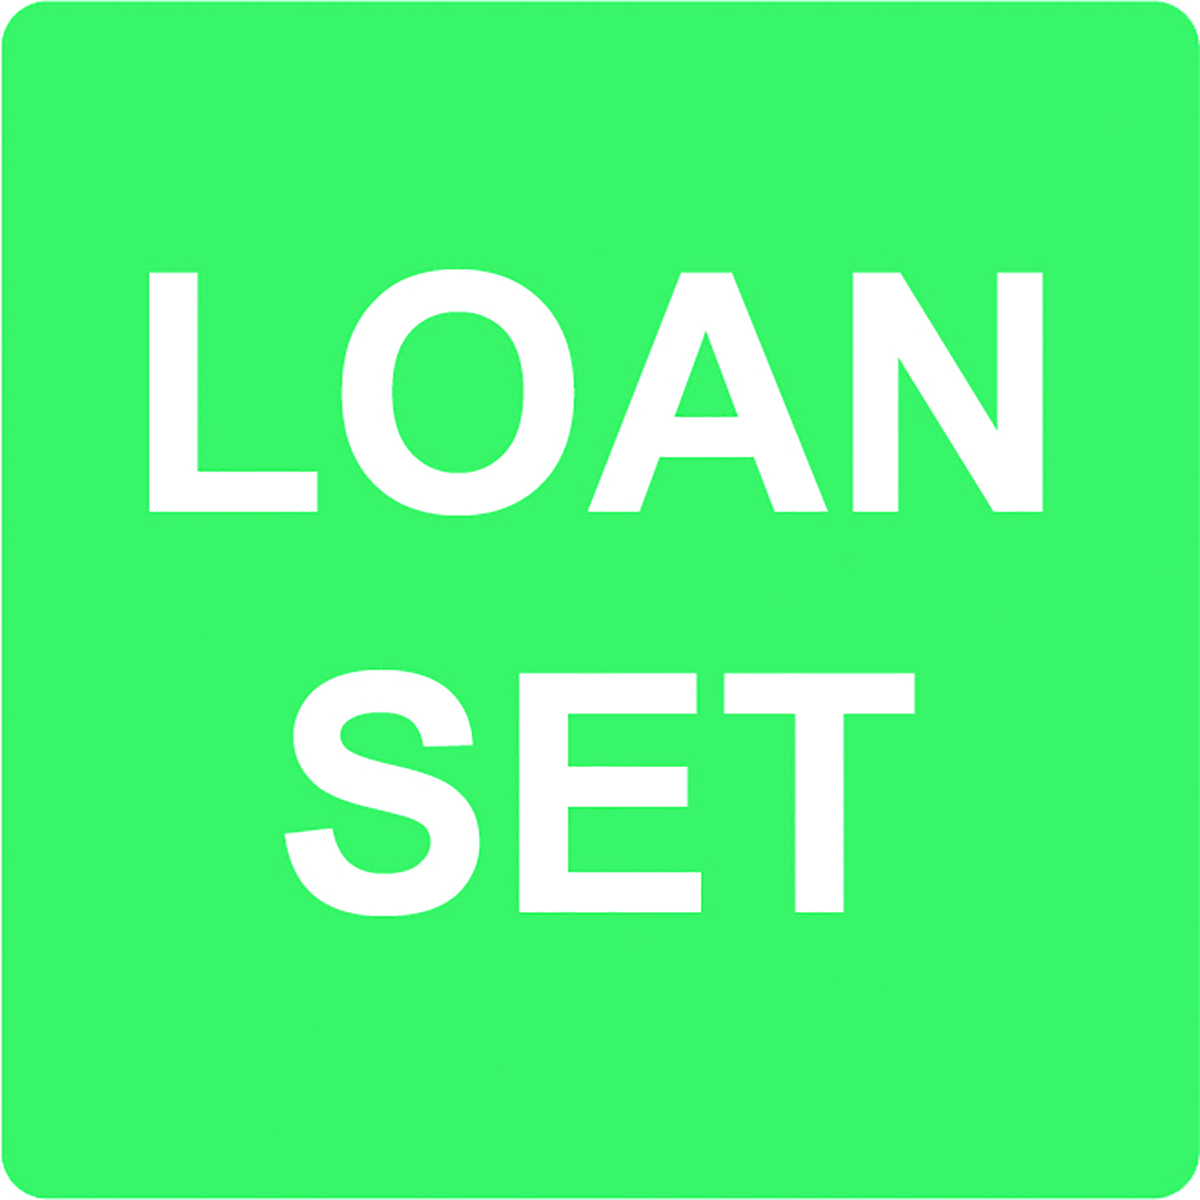 Loan Set Alert Label  Image